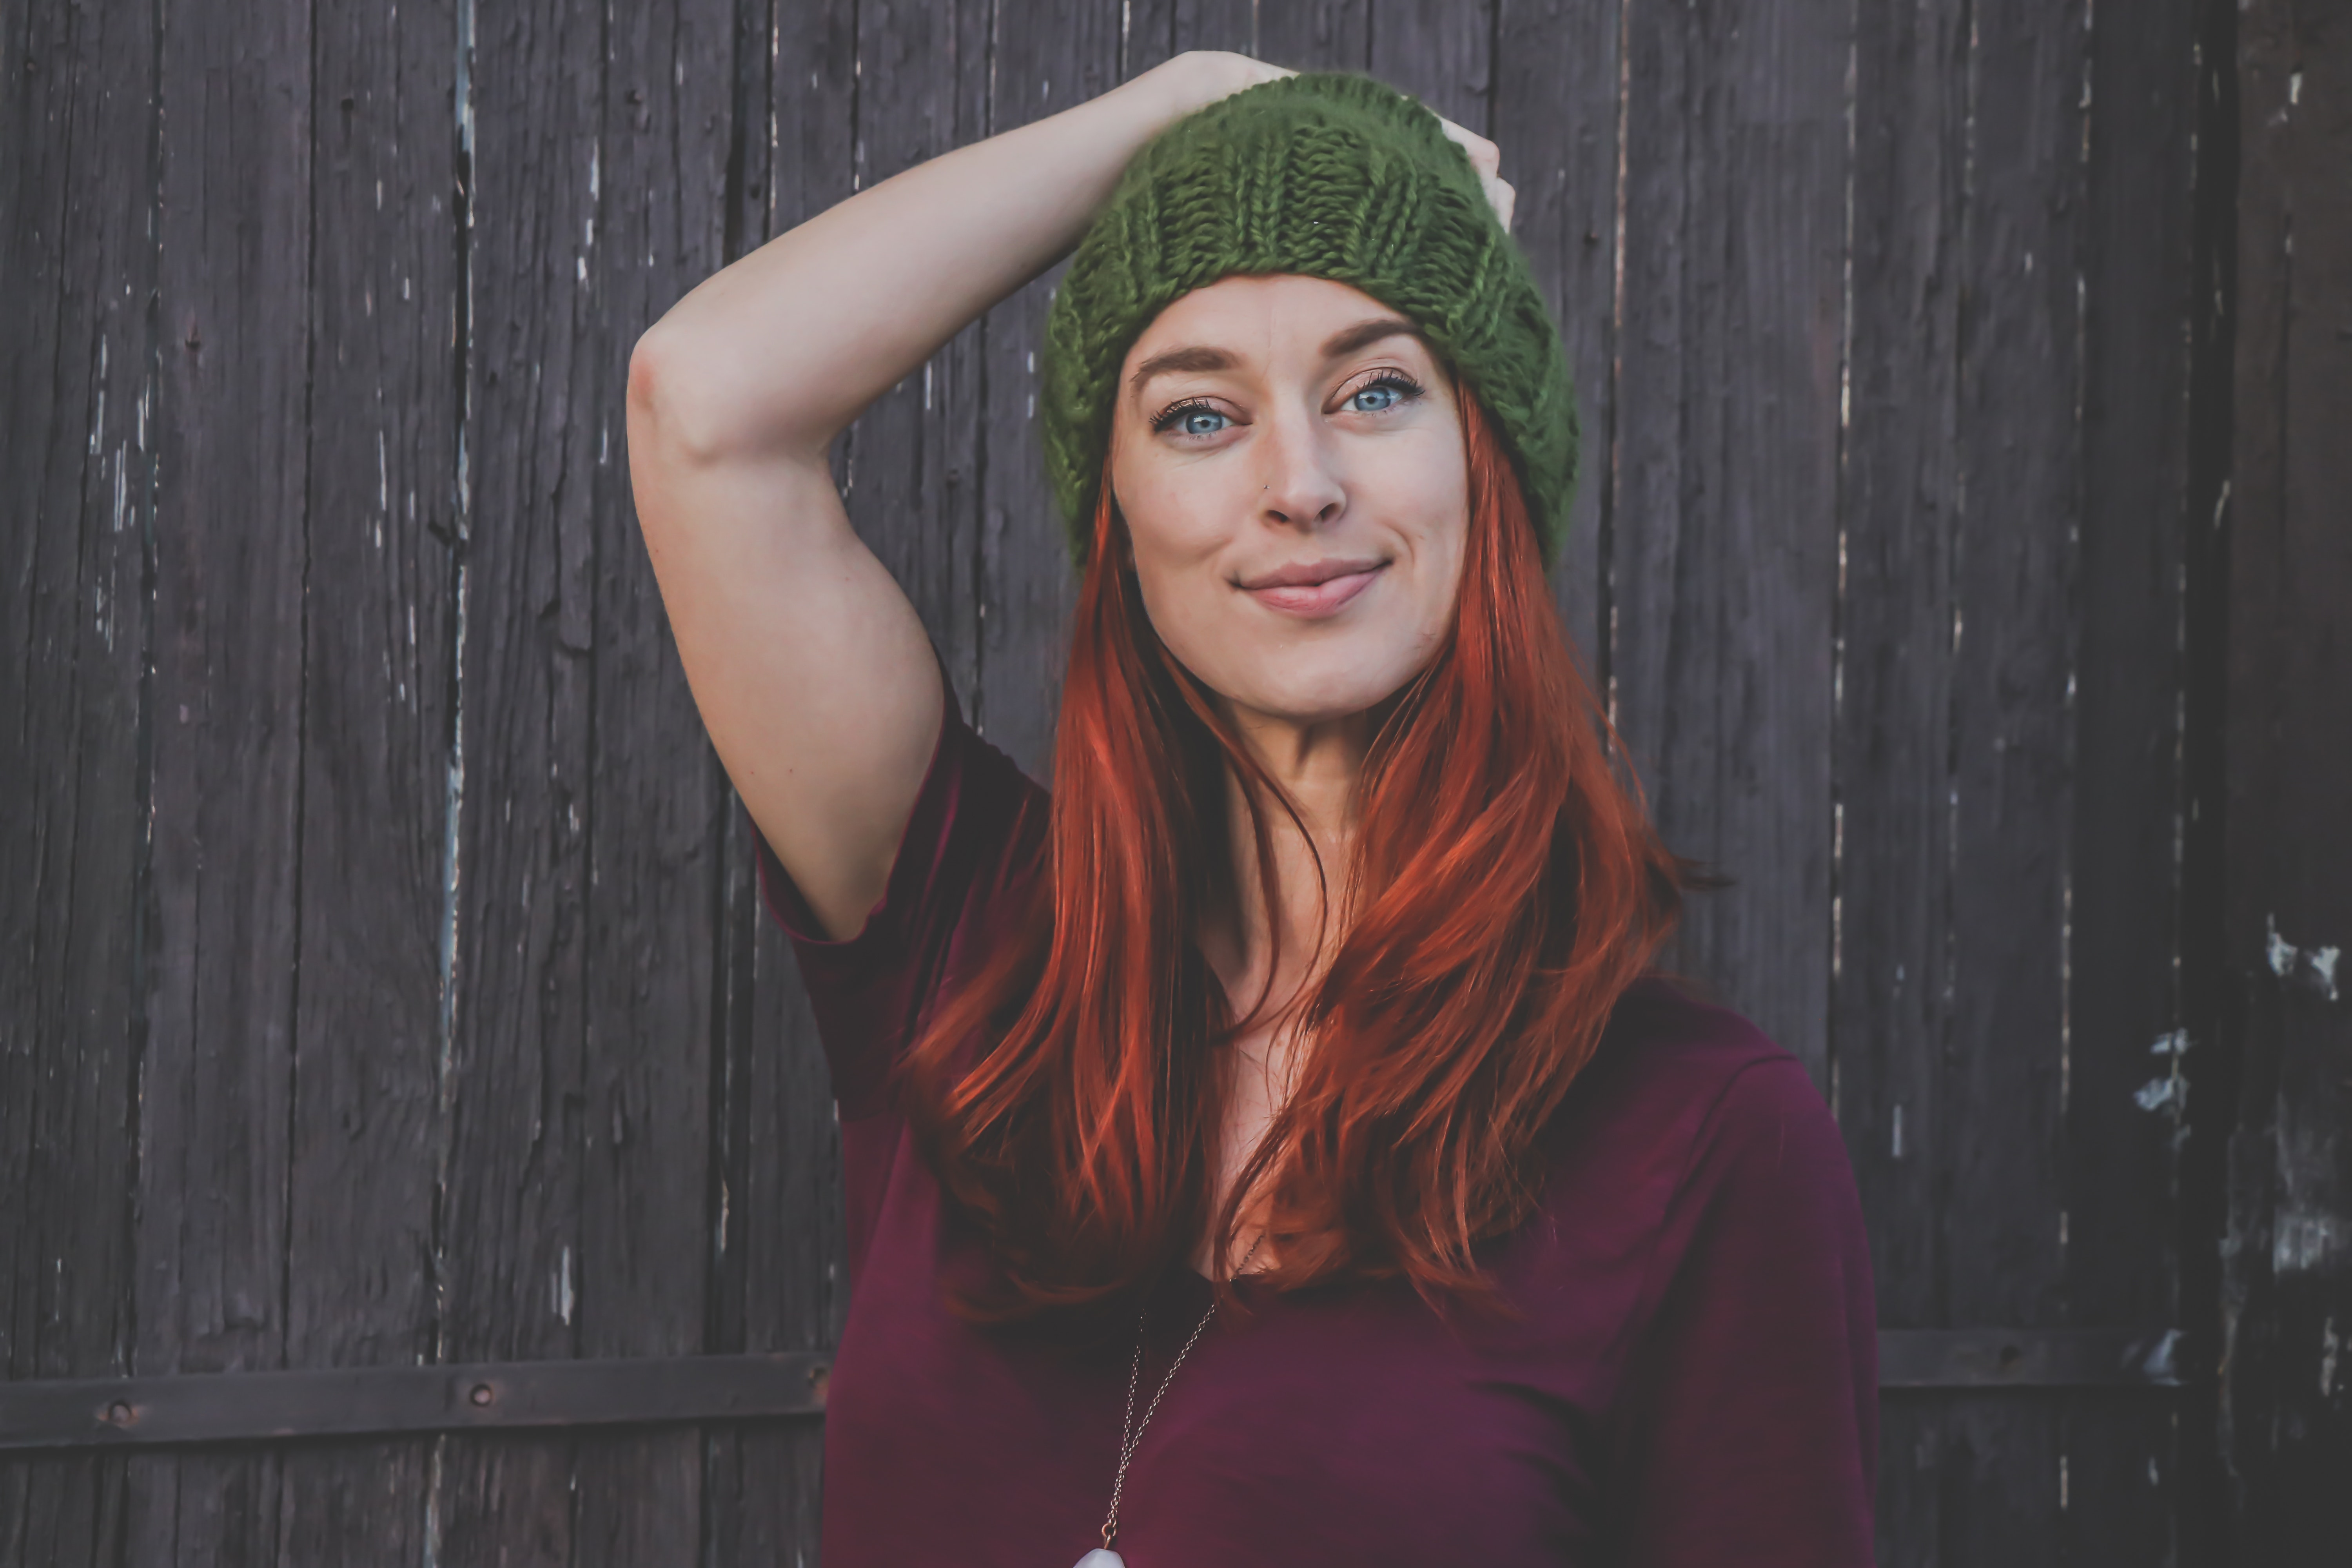 Red Haired Woman in Maroon Top Wearing Green Beanie, Looking, Young, Wooden gate, Woman, HQ Photo